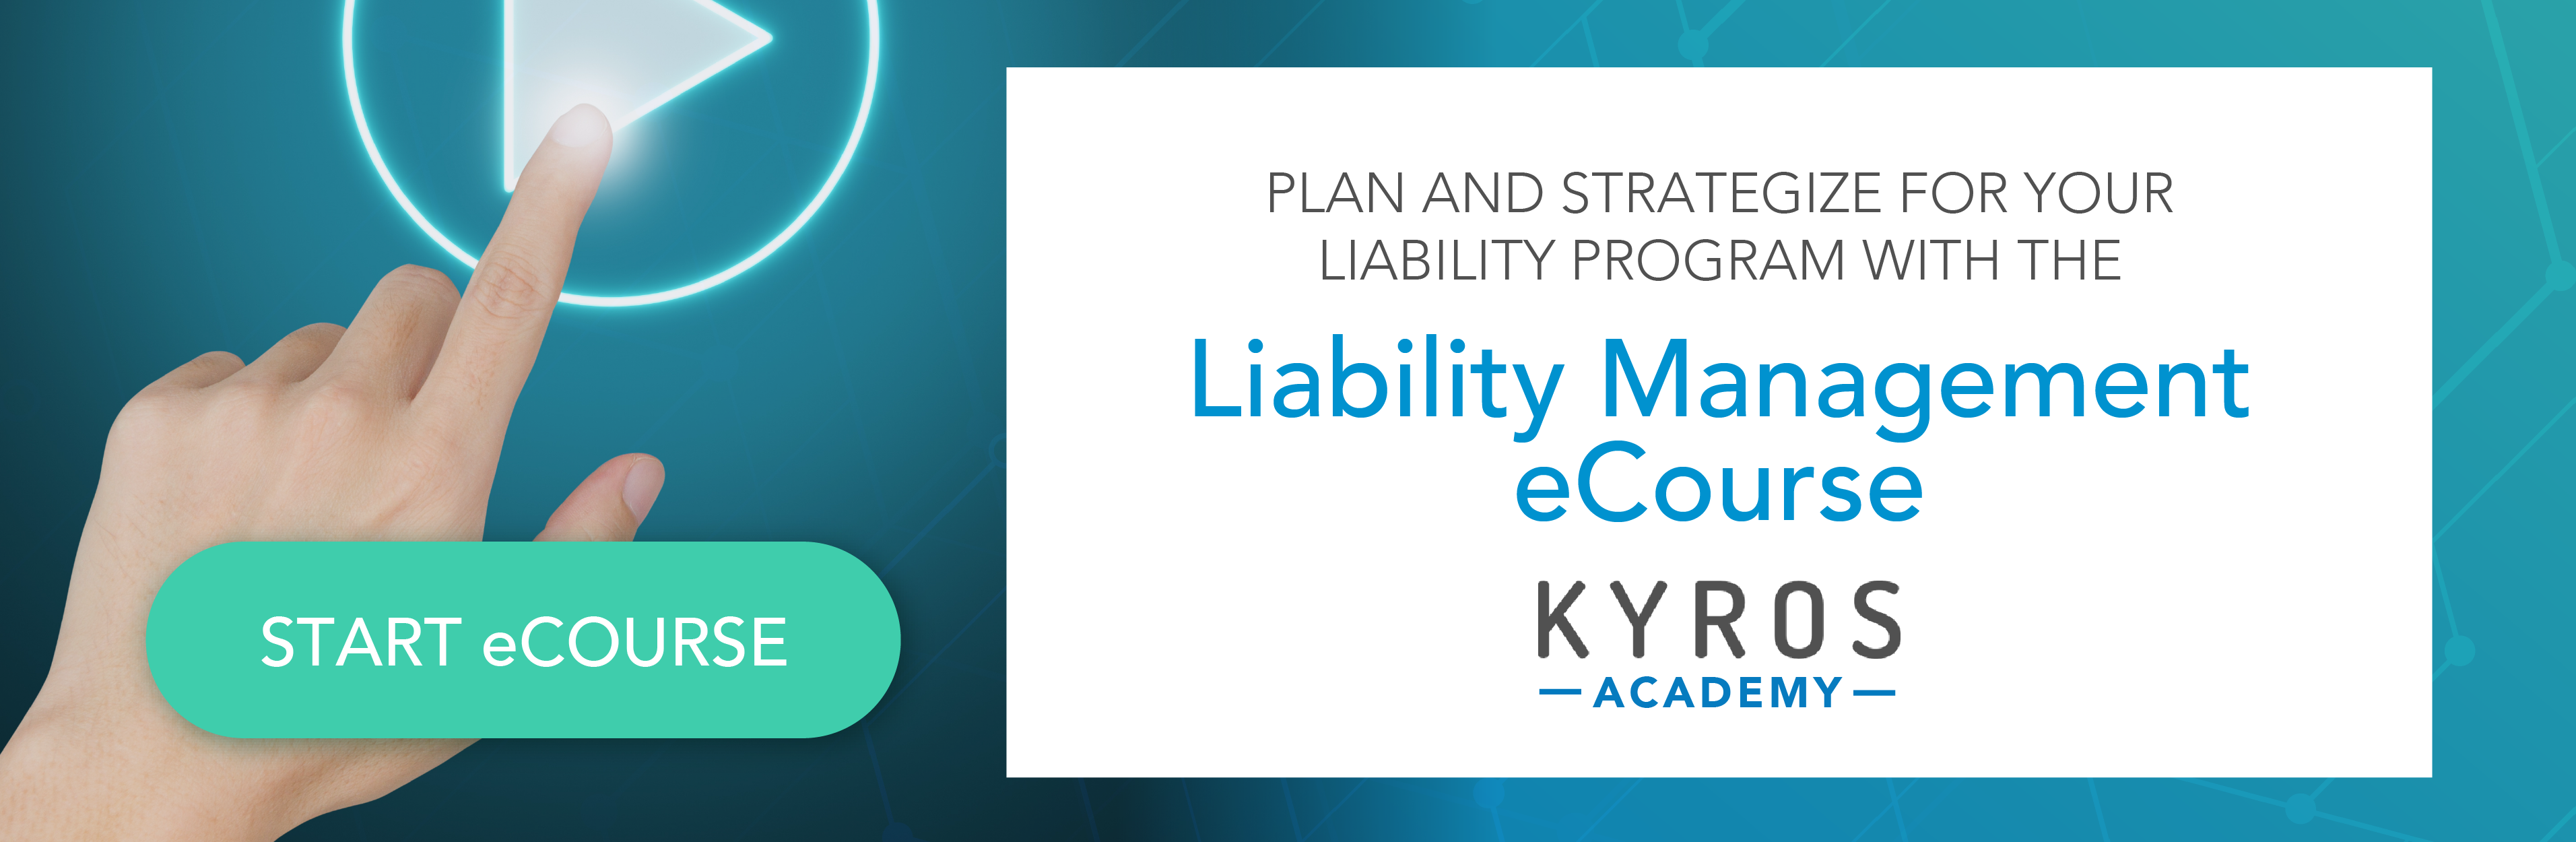 liability-management-ecourse